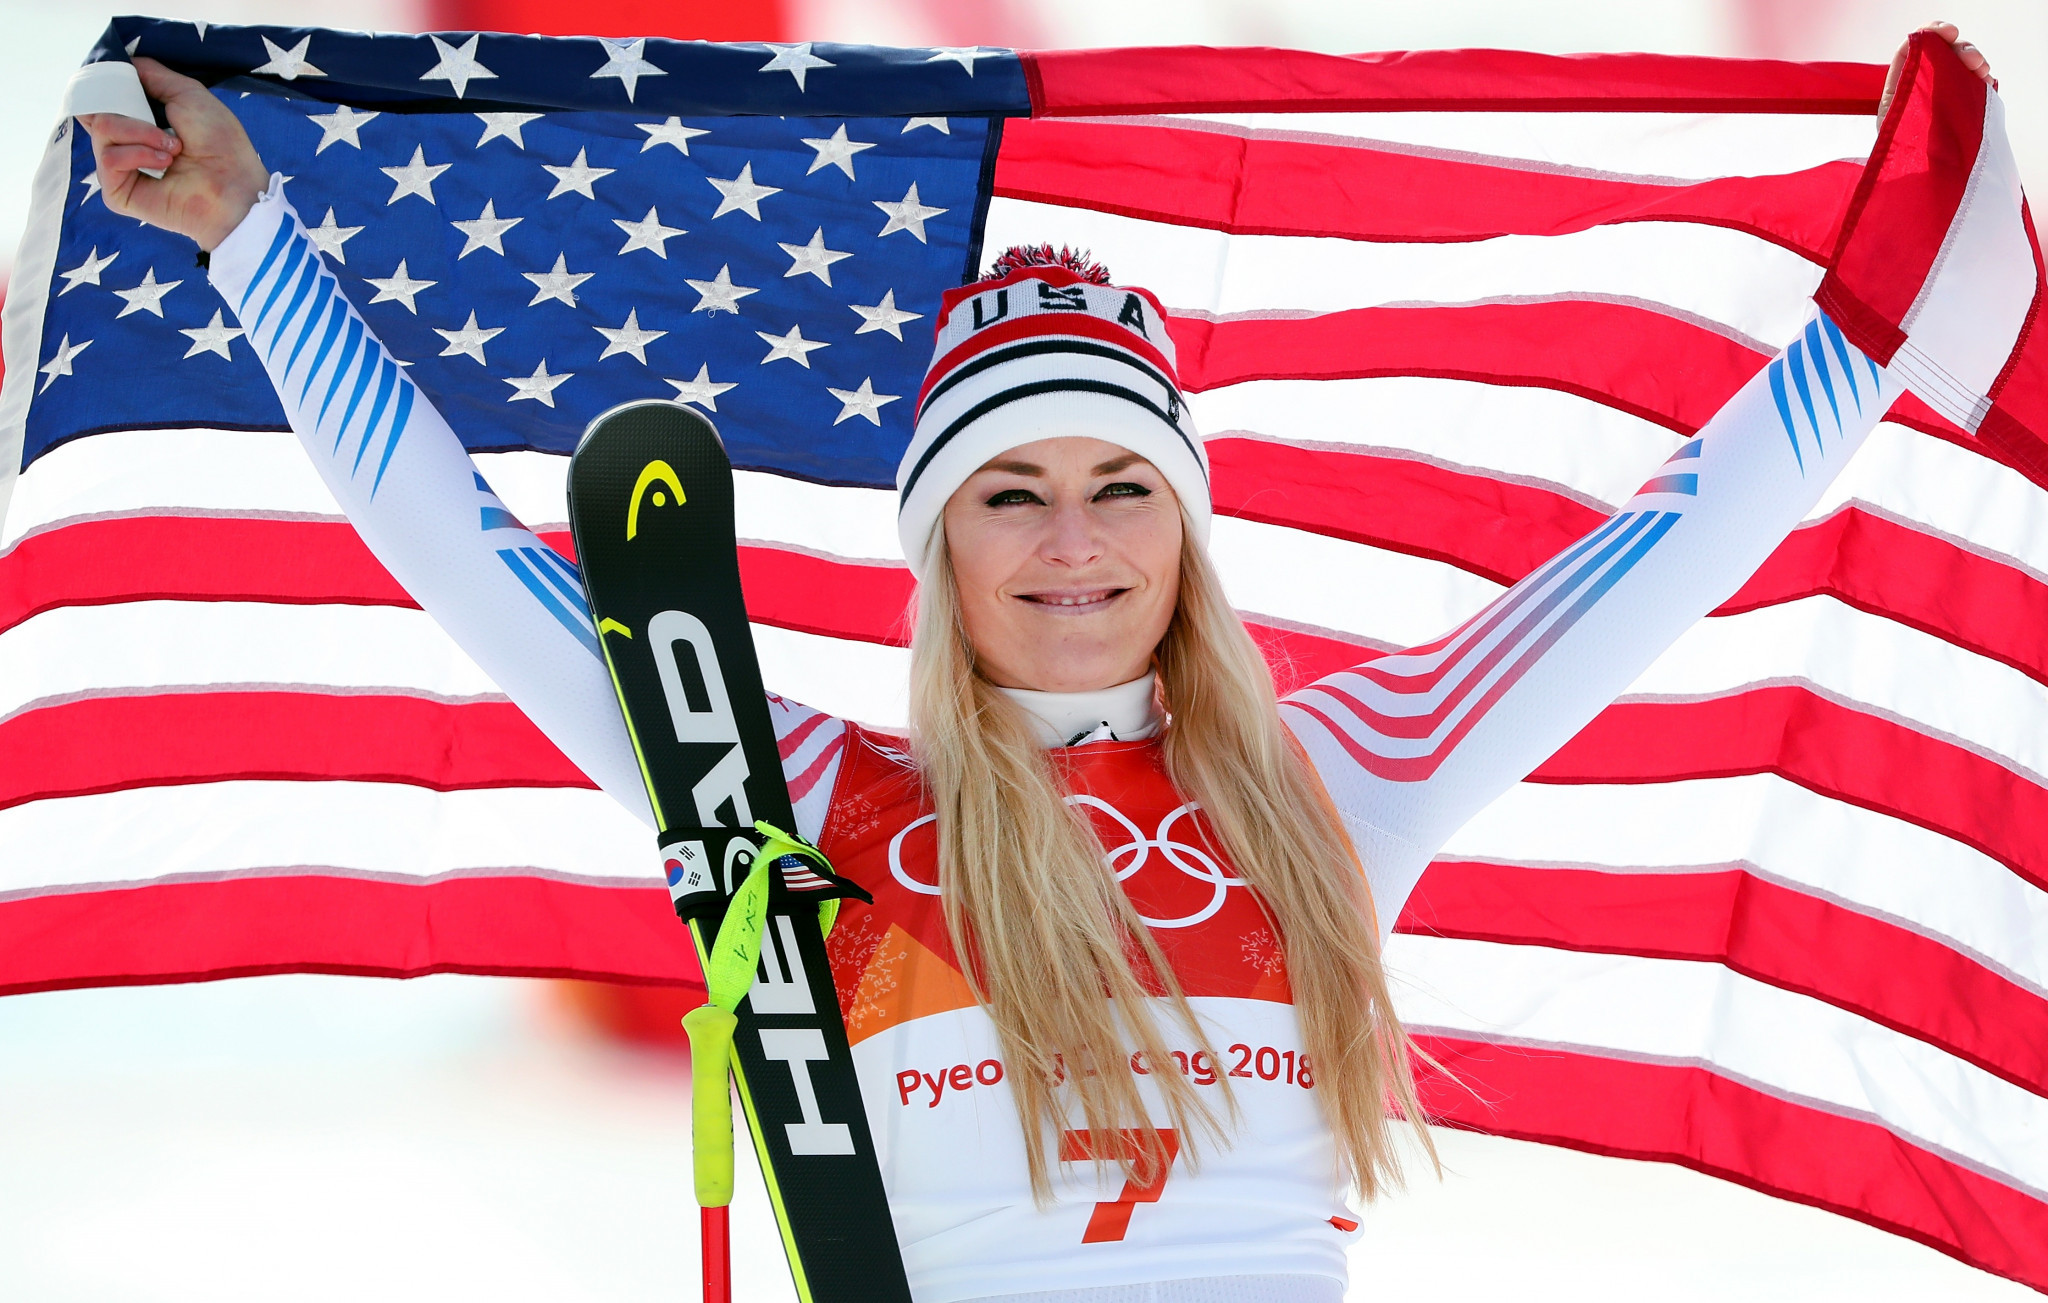 Skiing legend Vonn backs athlete protests but not on Olympic podium